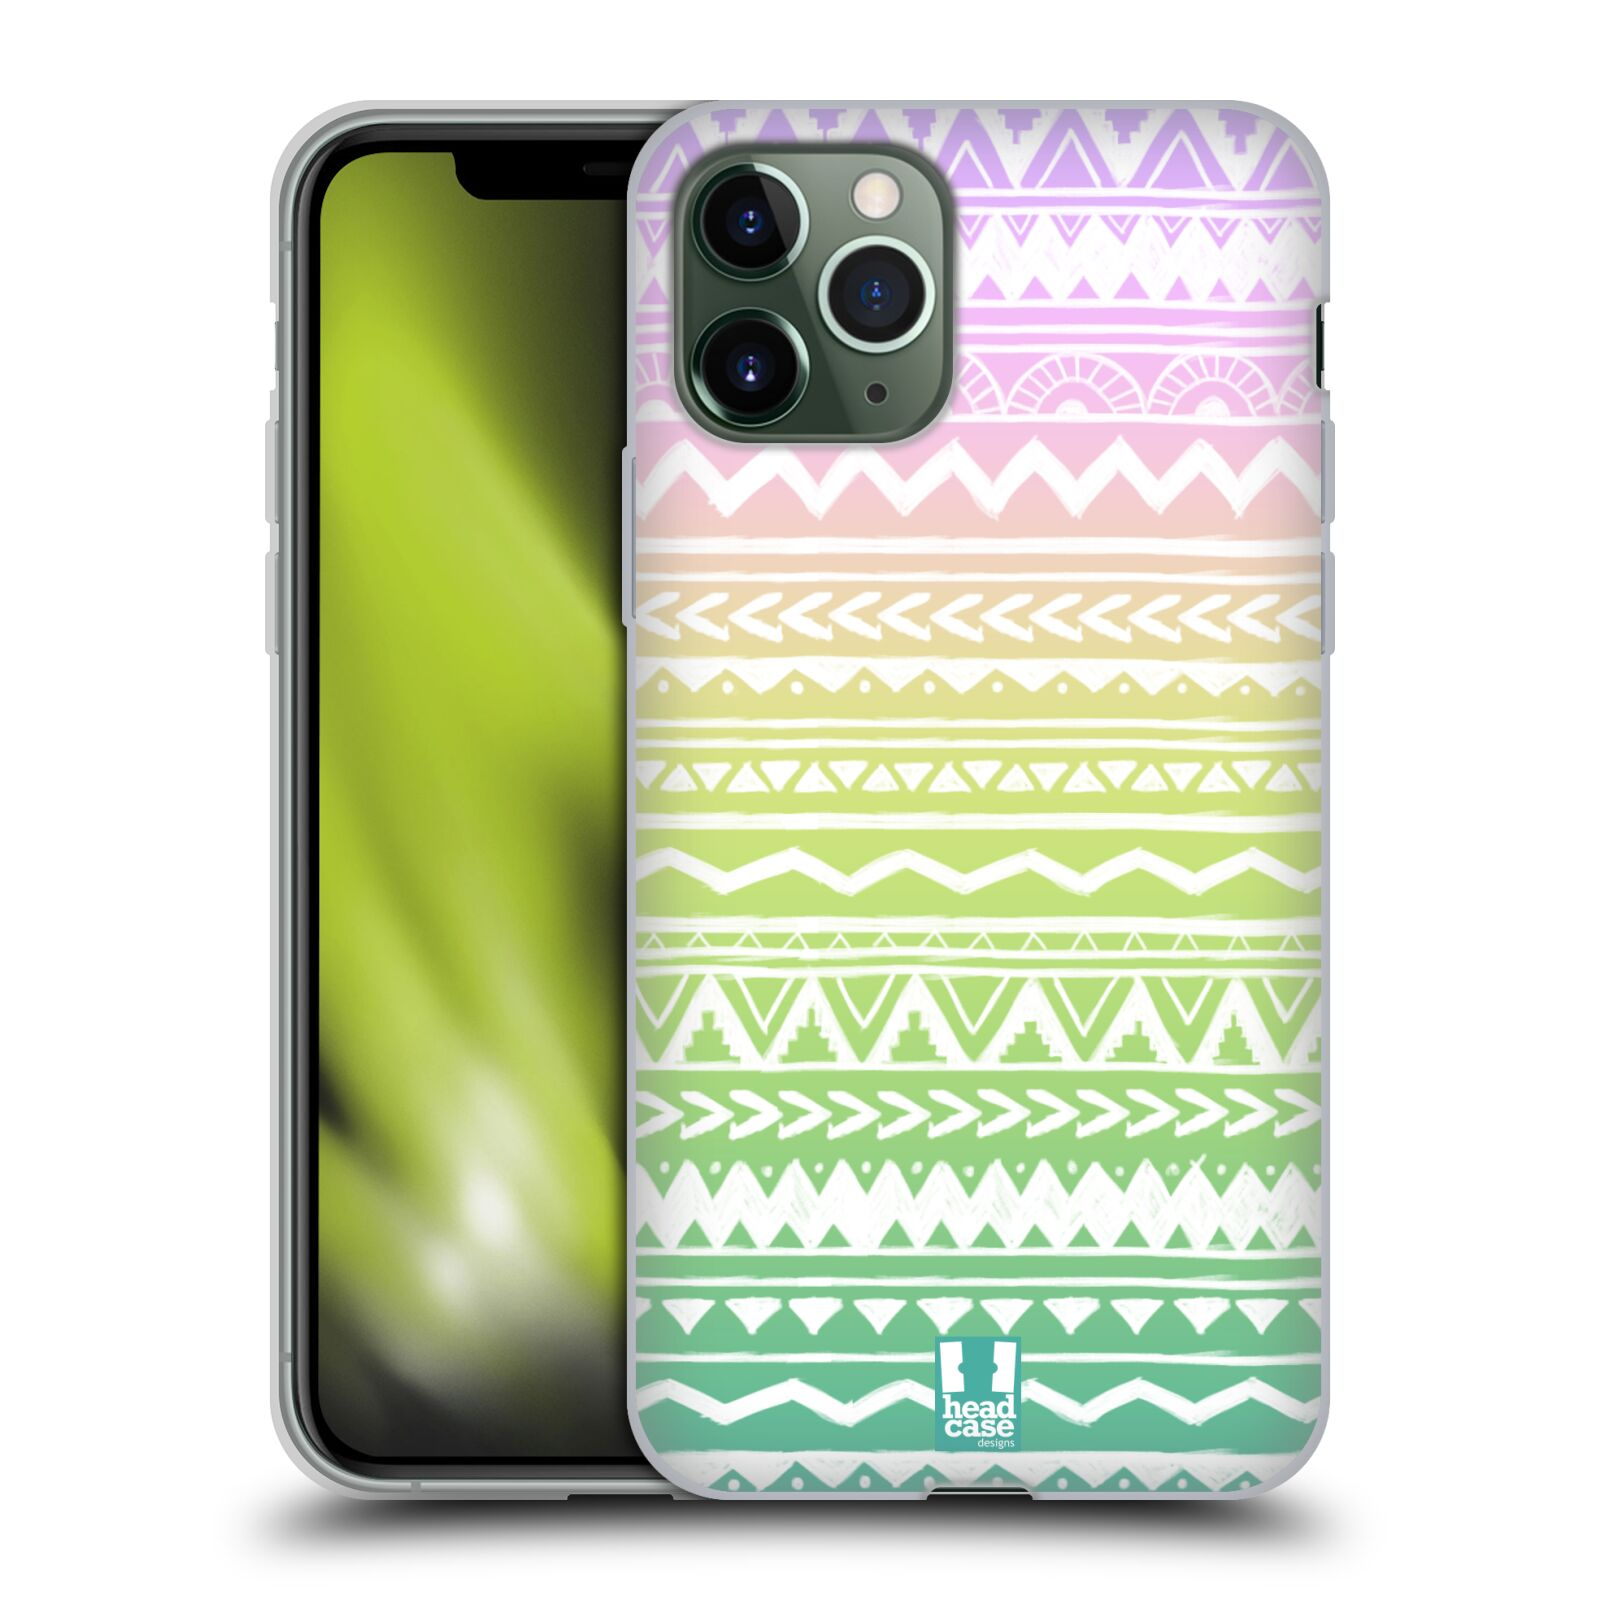 zadni kryt iphone 4 | Silikonové pouzdro na mobil Apple iPhone 11 Pro - Head Case - MIX AZTEC DRAWN